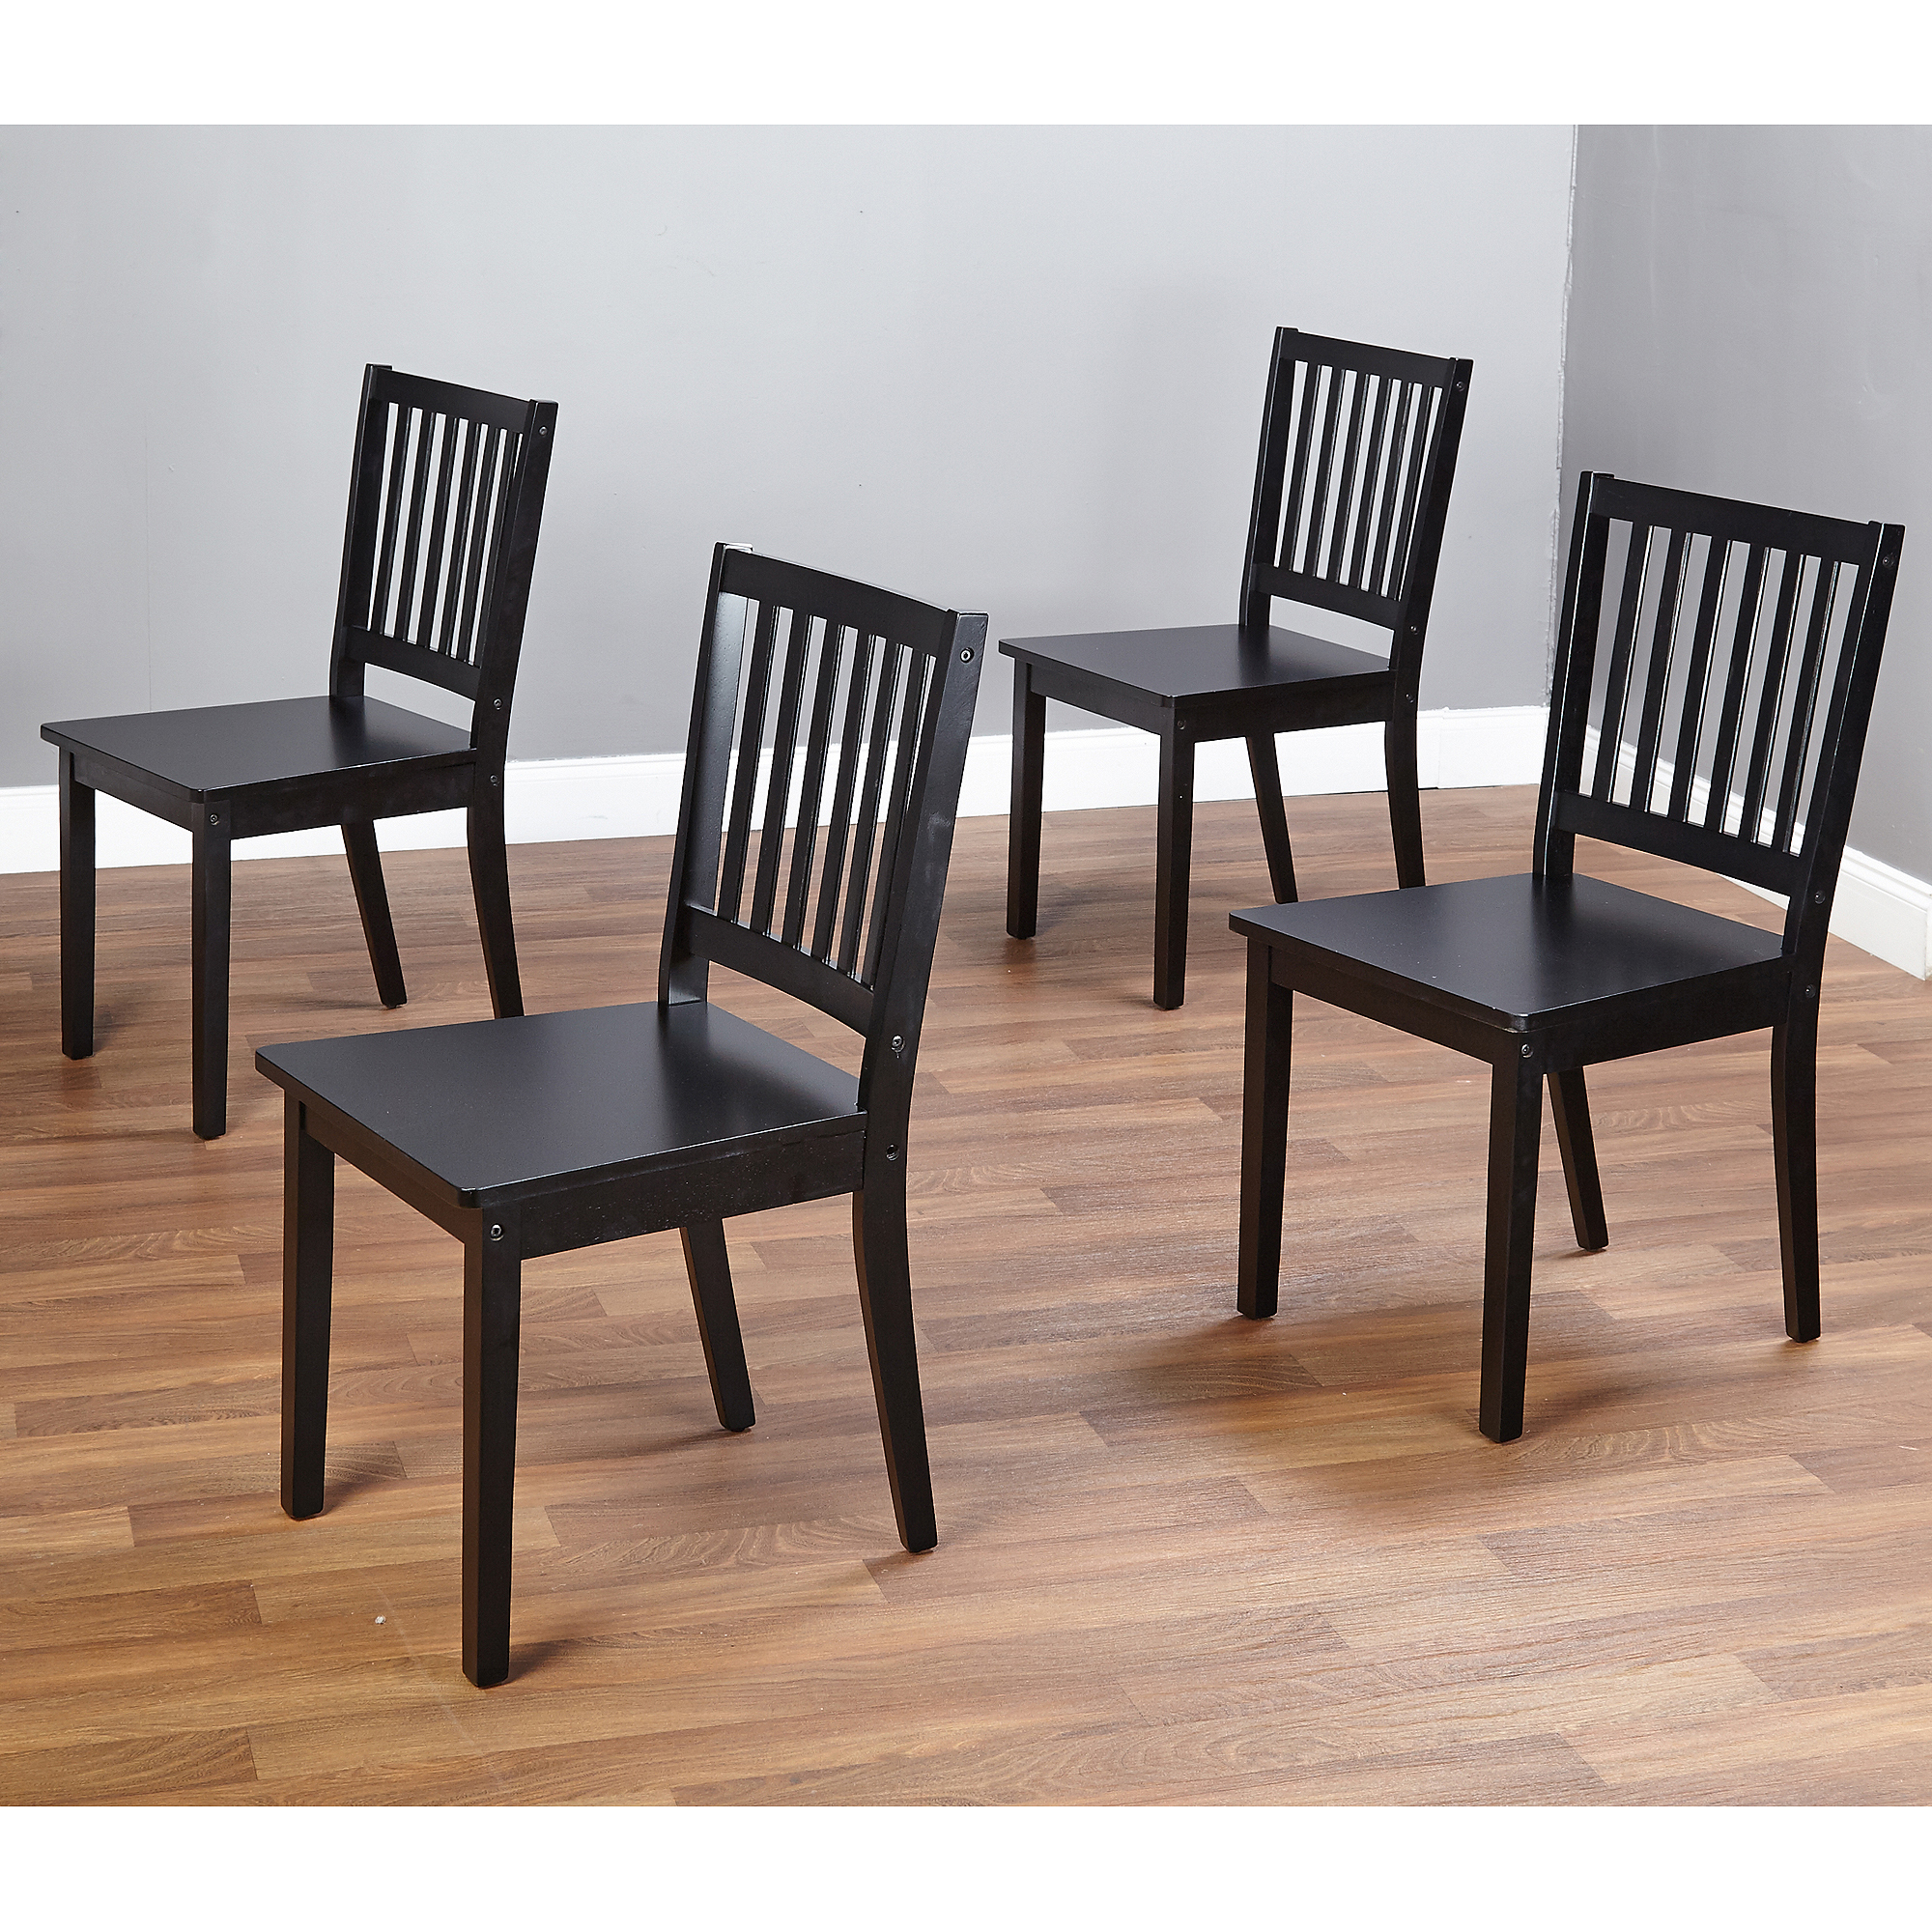 shaker dining chairs set of 4 espresso walmartcom - Set Of Dining Chairs